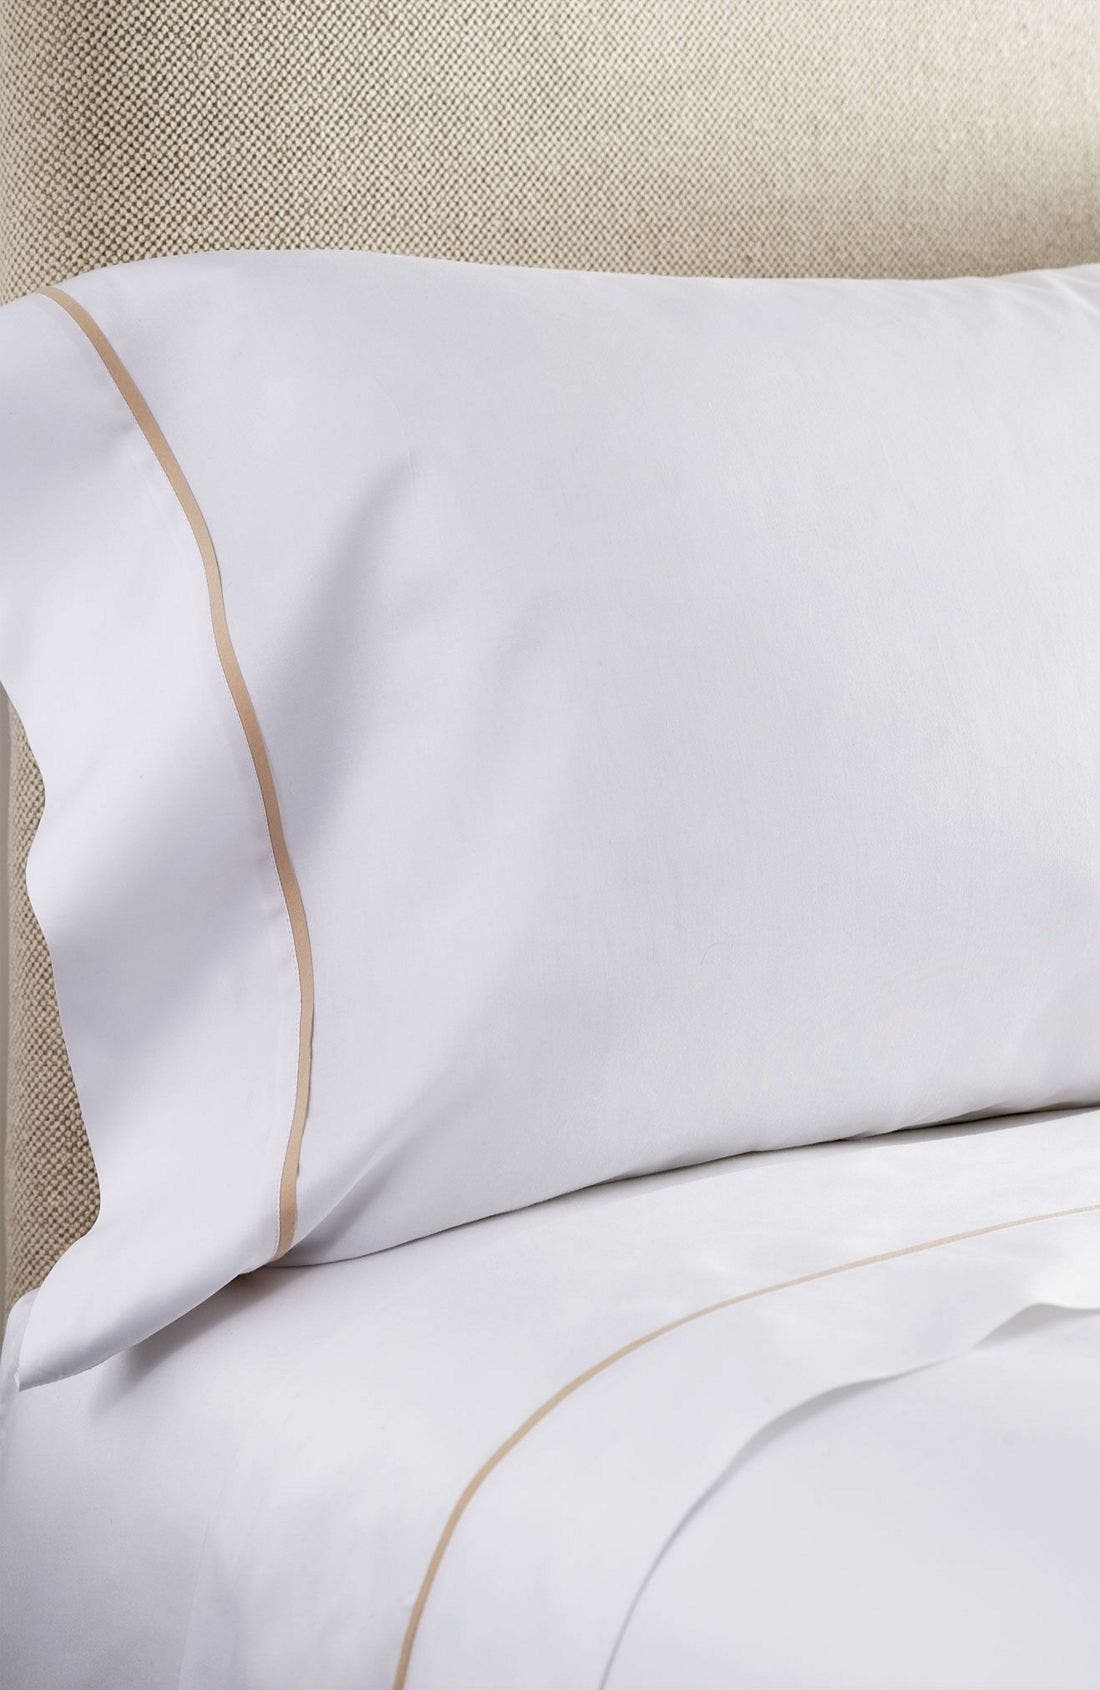 Main Image - Westin Heavenly Bed® 300 Thread Count Egyptian Cotton Luxe Pillowcase